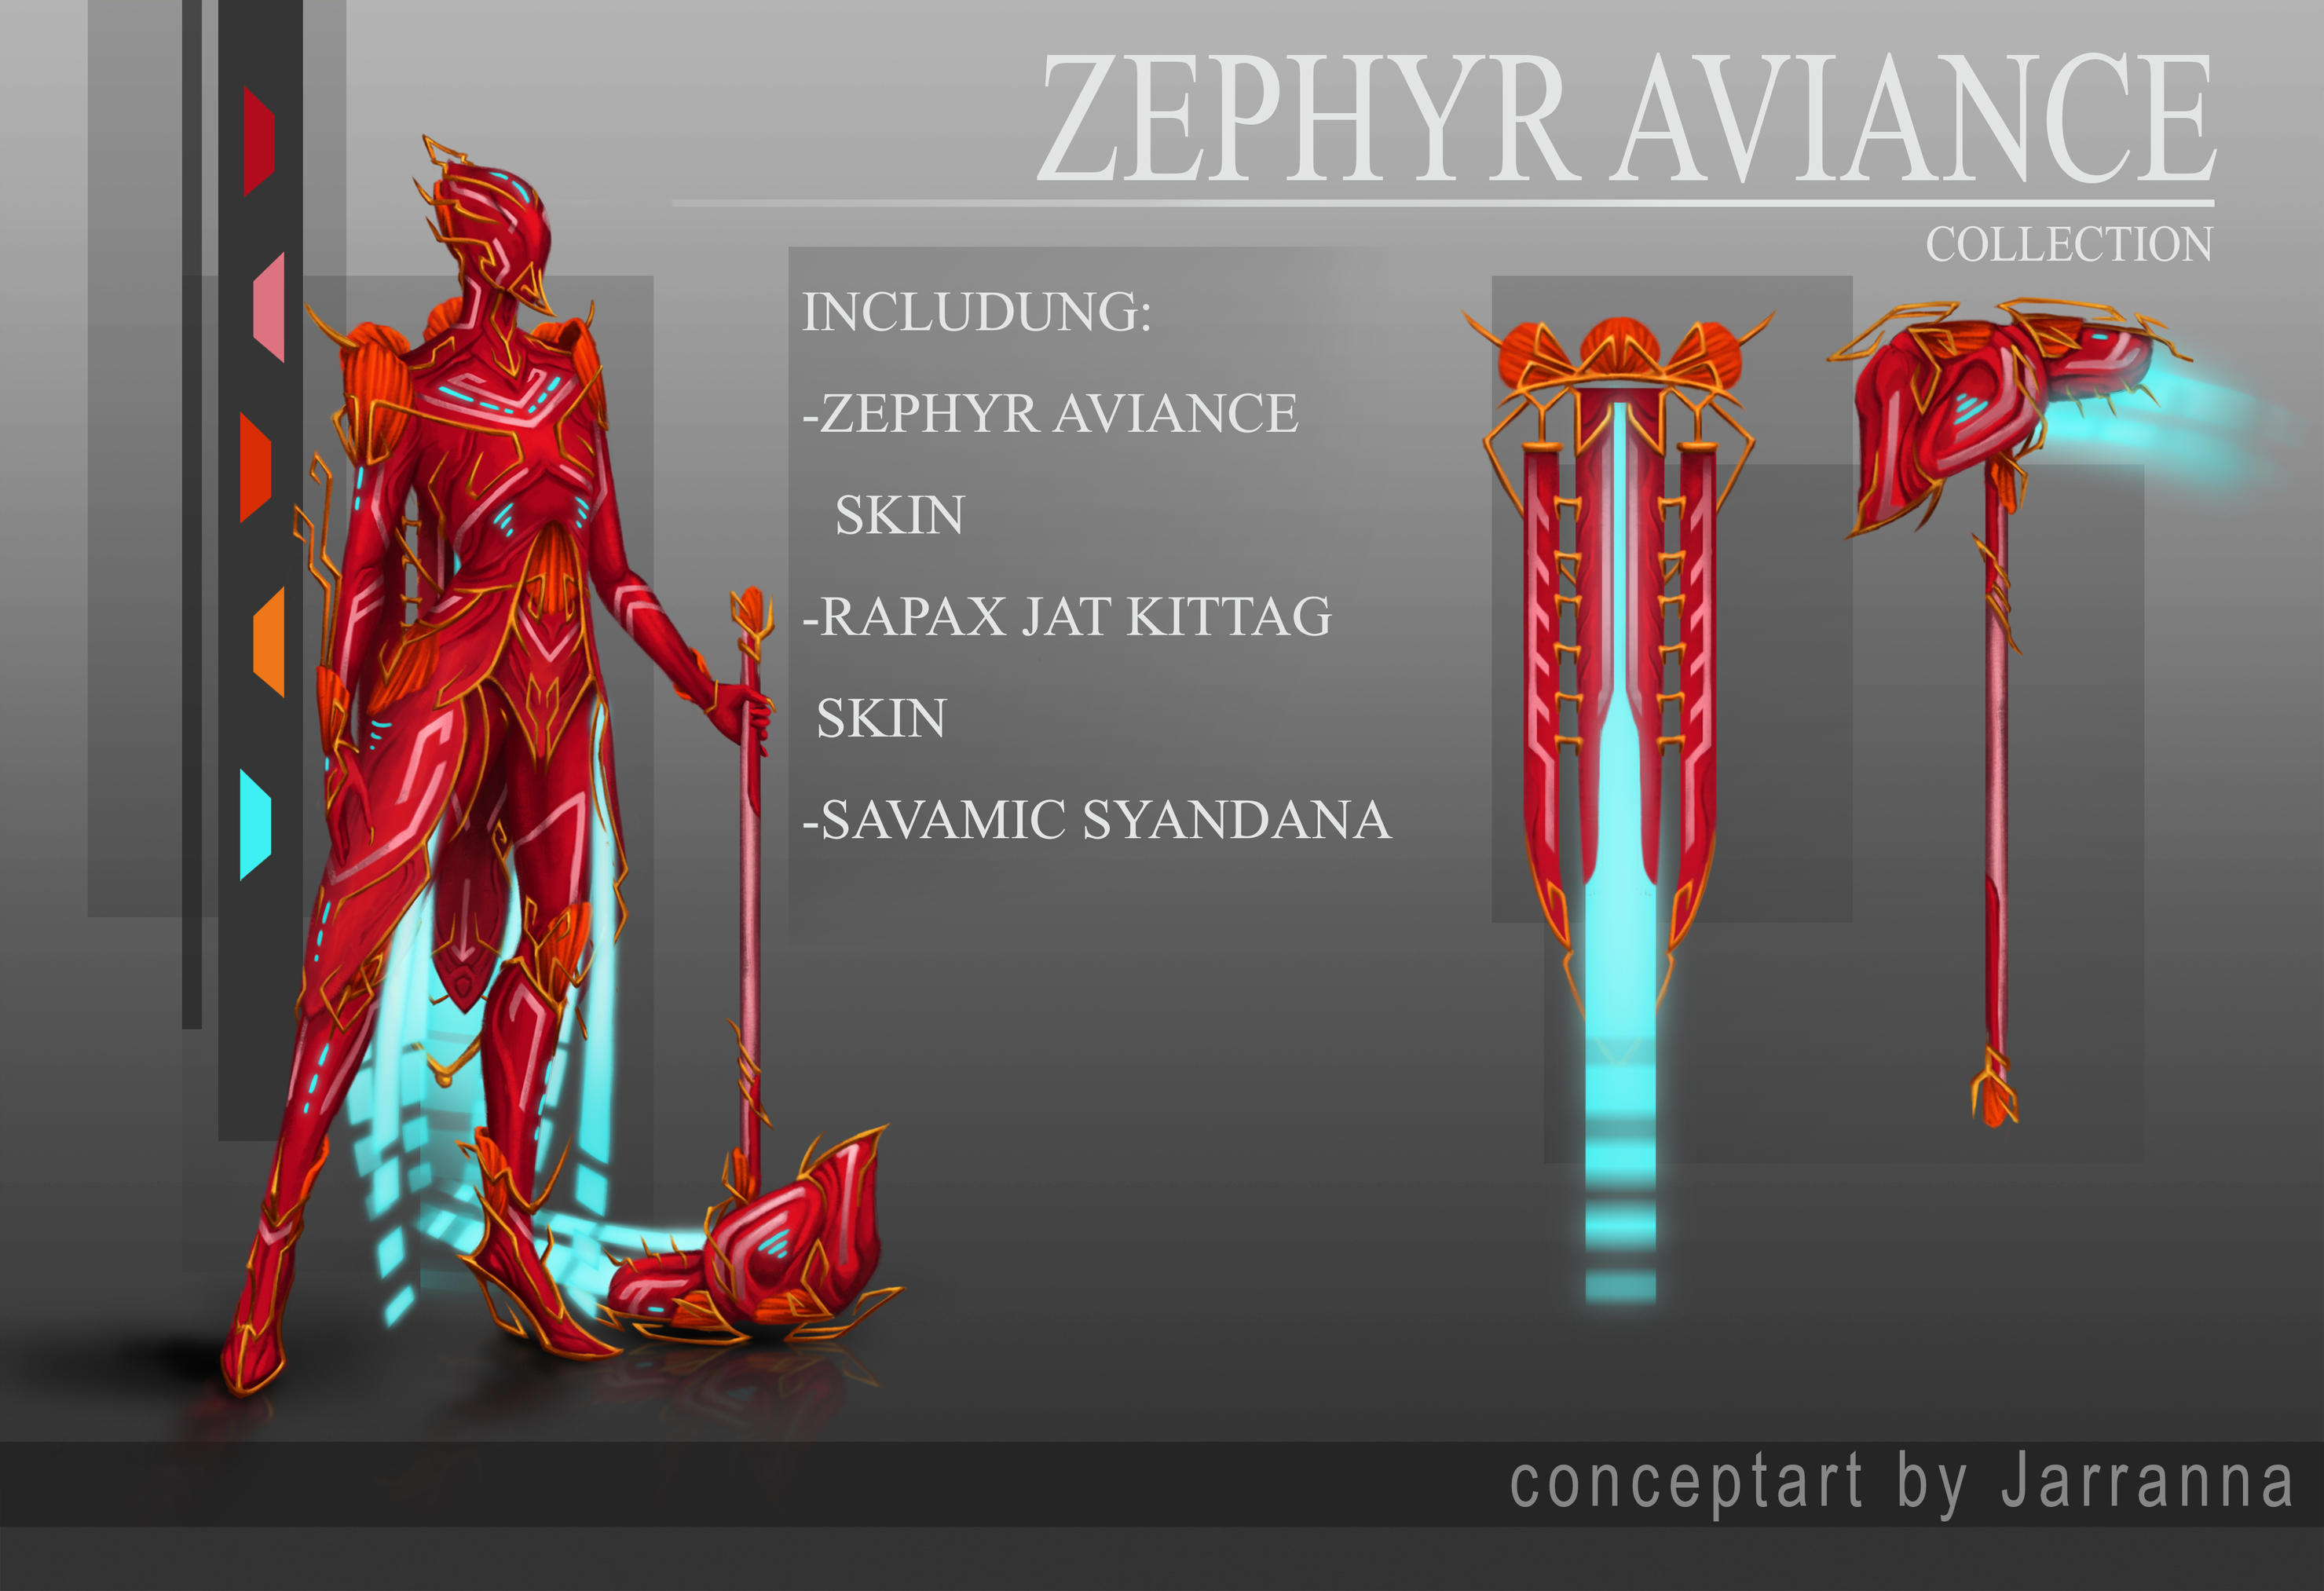 Zephyr Aviance Collection by Jarranna